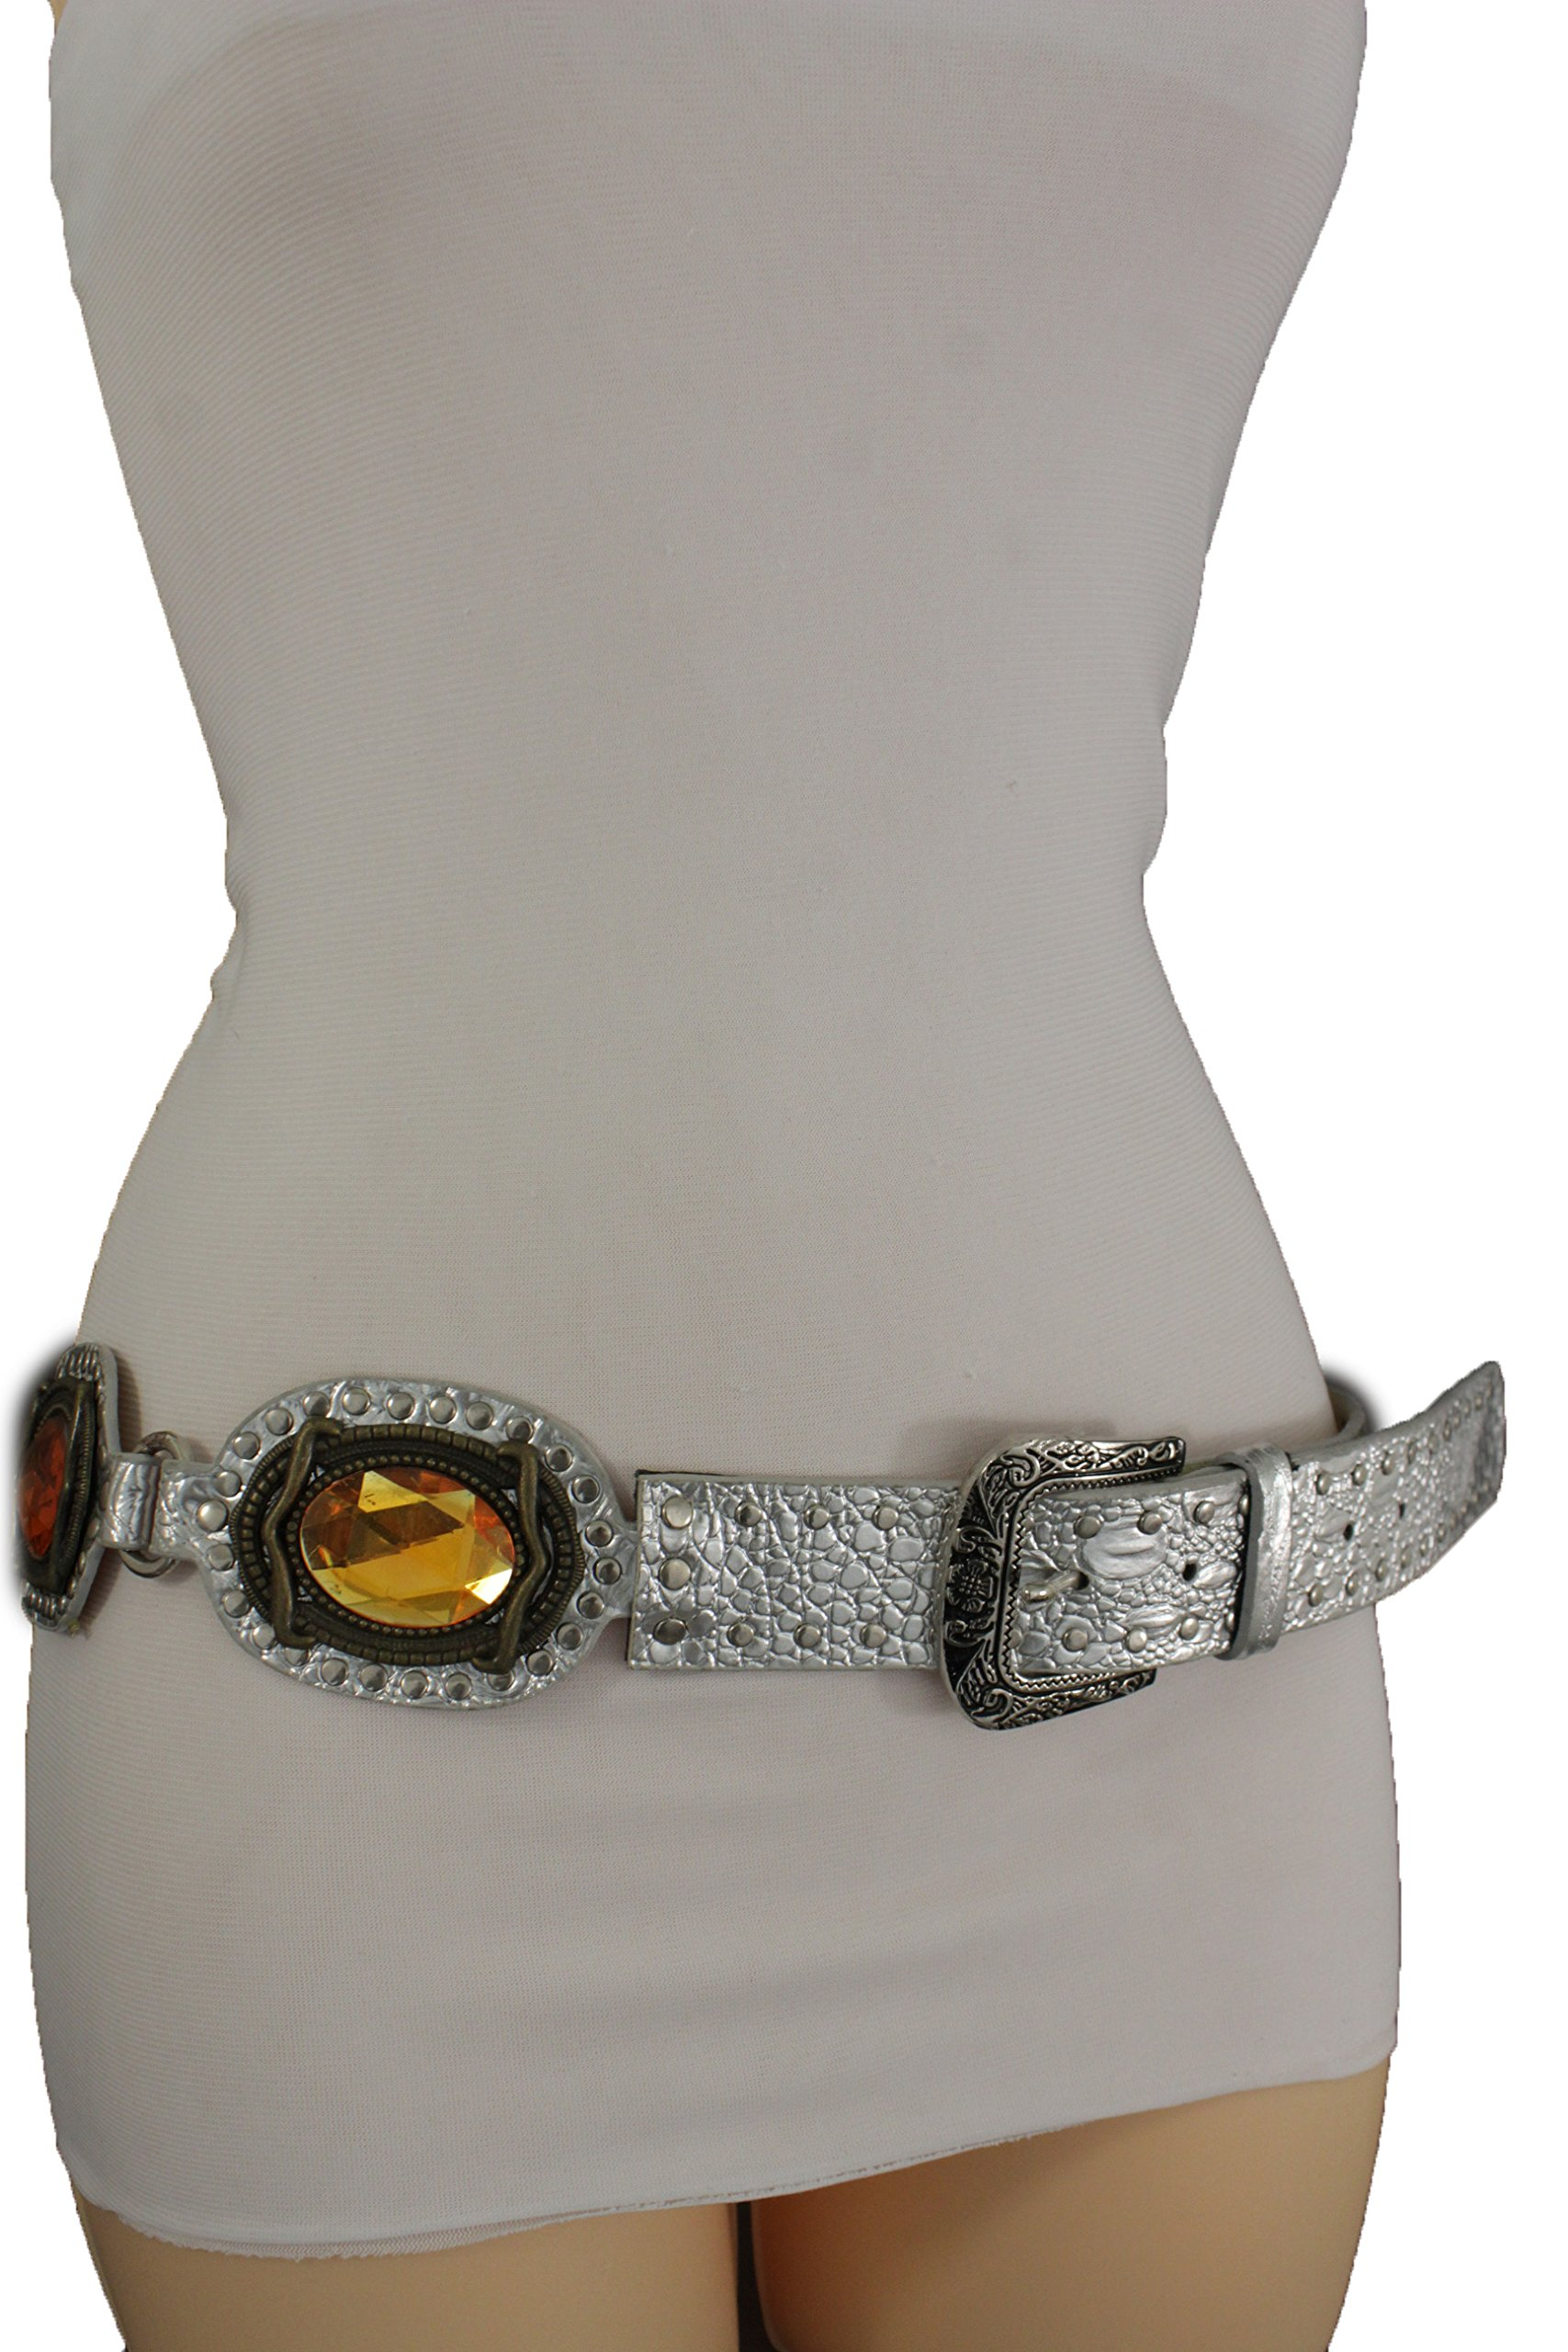 TFJ Women Fashion Ethnic Bohemian Belt Hip MEtallic Silver Faux Leather Big BeadsM L